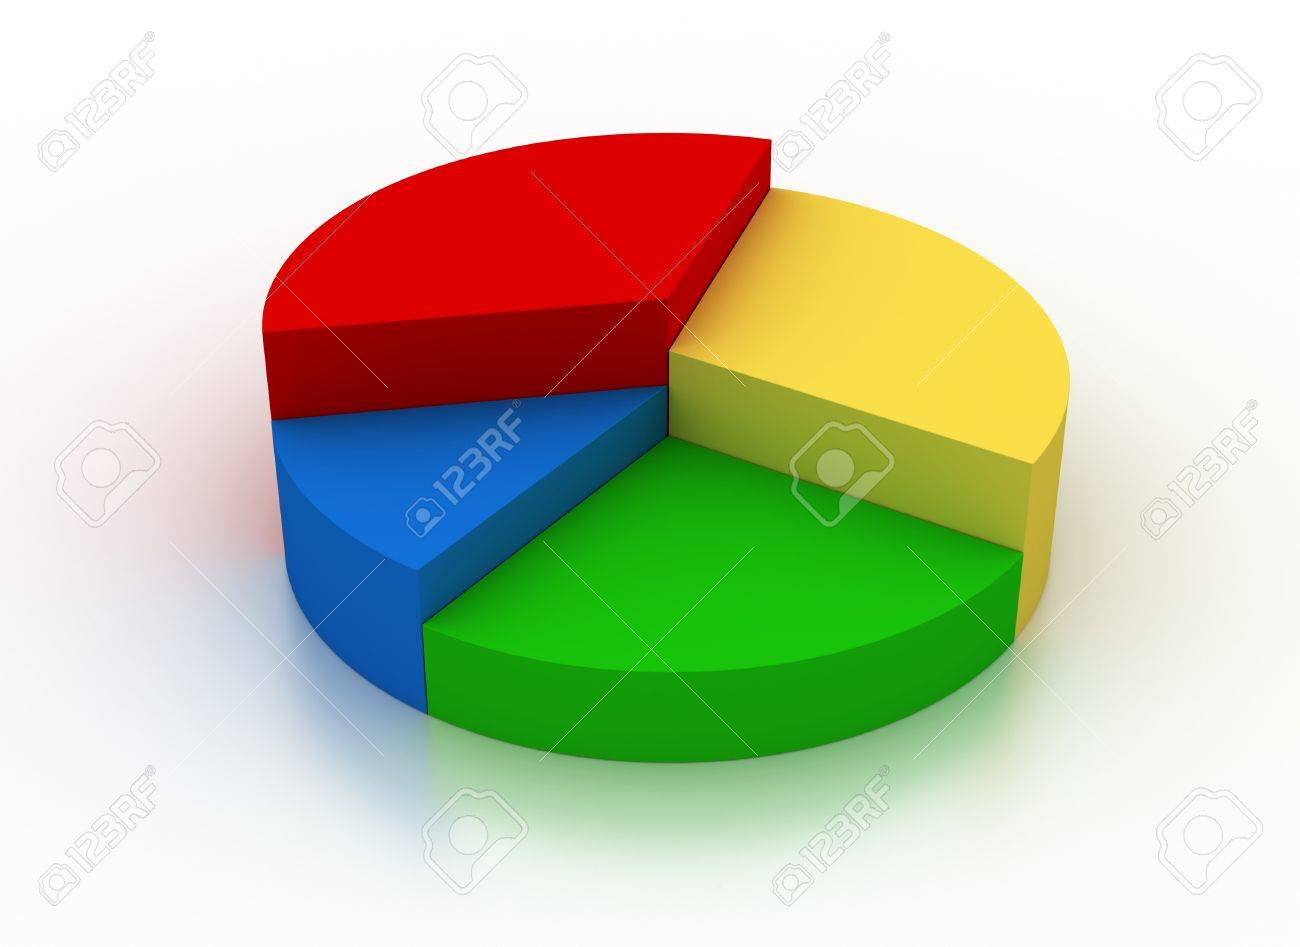 3d render of colored pie chart stock photo picture and royalty 3d render of colored pie chart stock photo 10704691 nvjuhfo Image collections